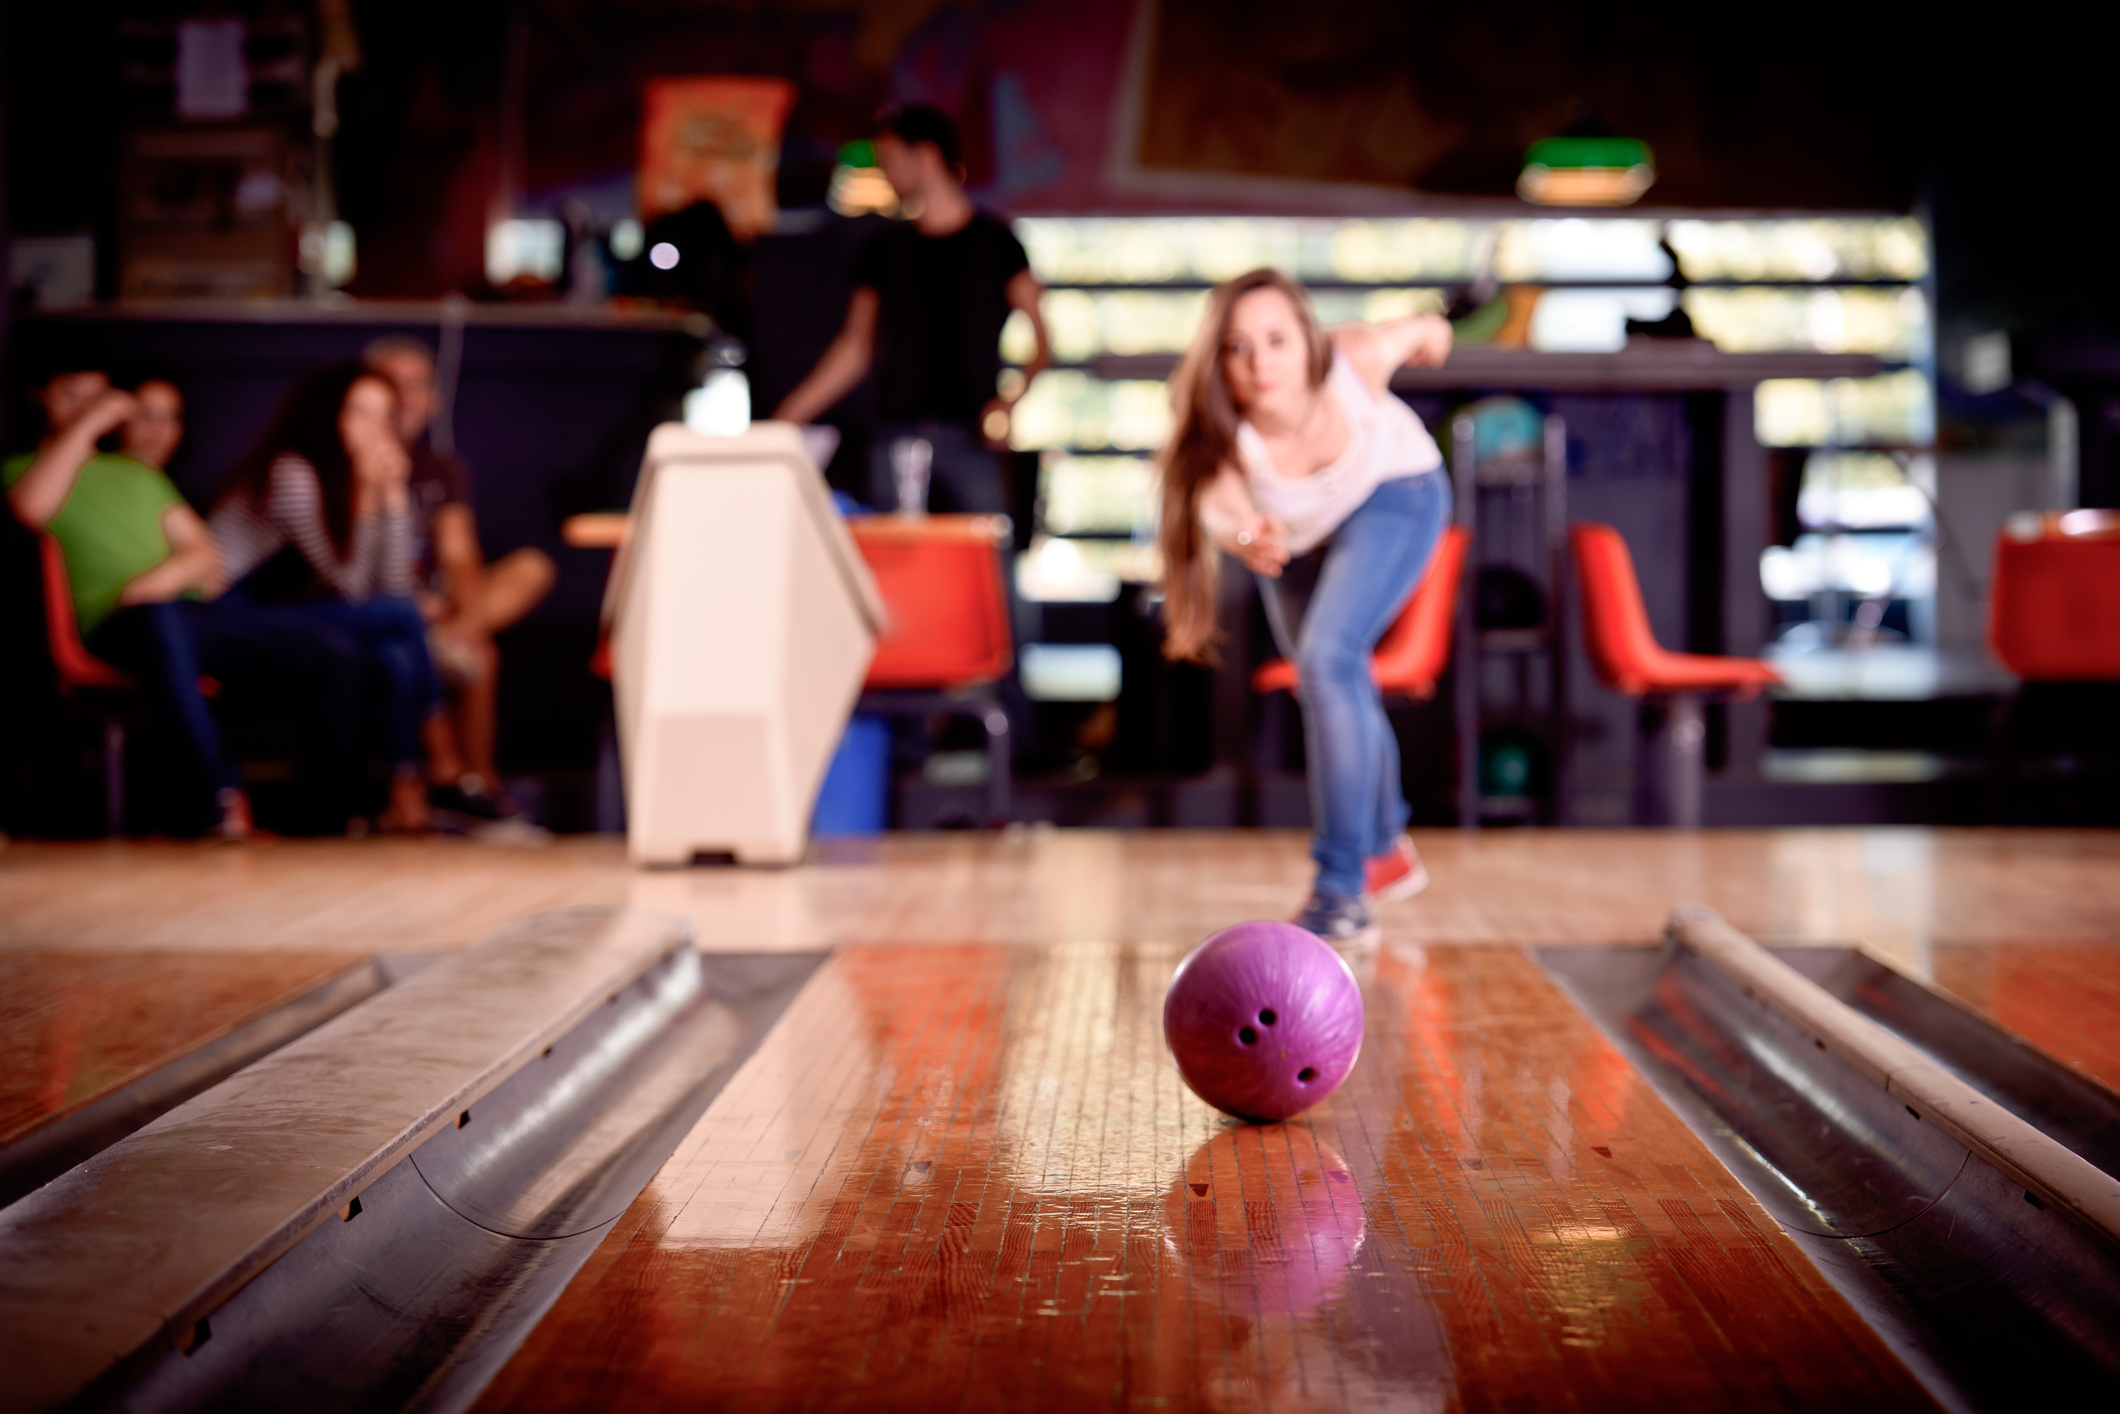 cosmic bowling -Fri & Sat - Starting at 7:30 p.m.Sound & Light show (Cosmic bowling) on Friday and Saturday nights. Music videos are played along with music on the big screens for extra fun.